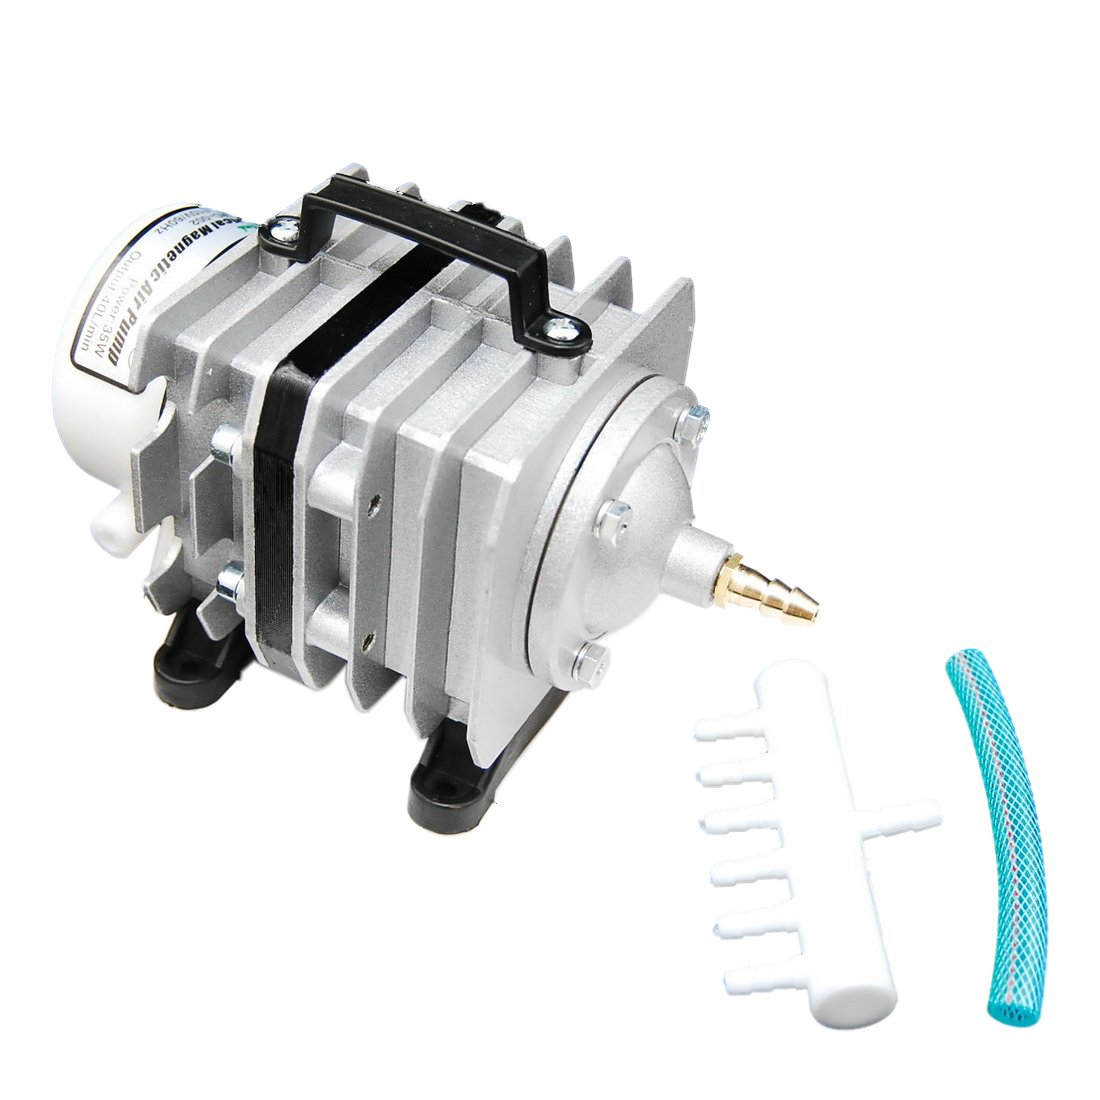 CNZ Commercial Air Pump 6 Outlets 40 L per Minute, 35W by CNZ